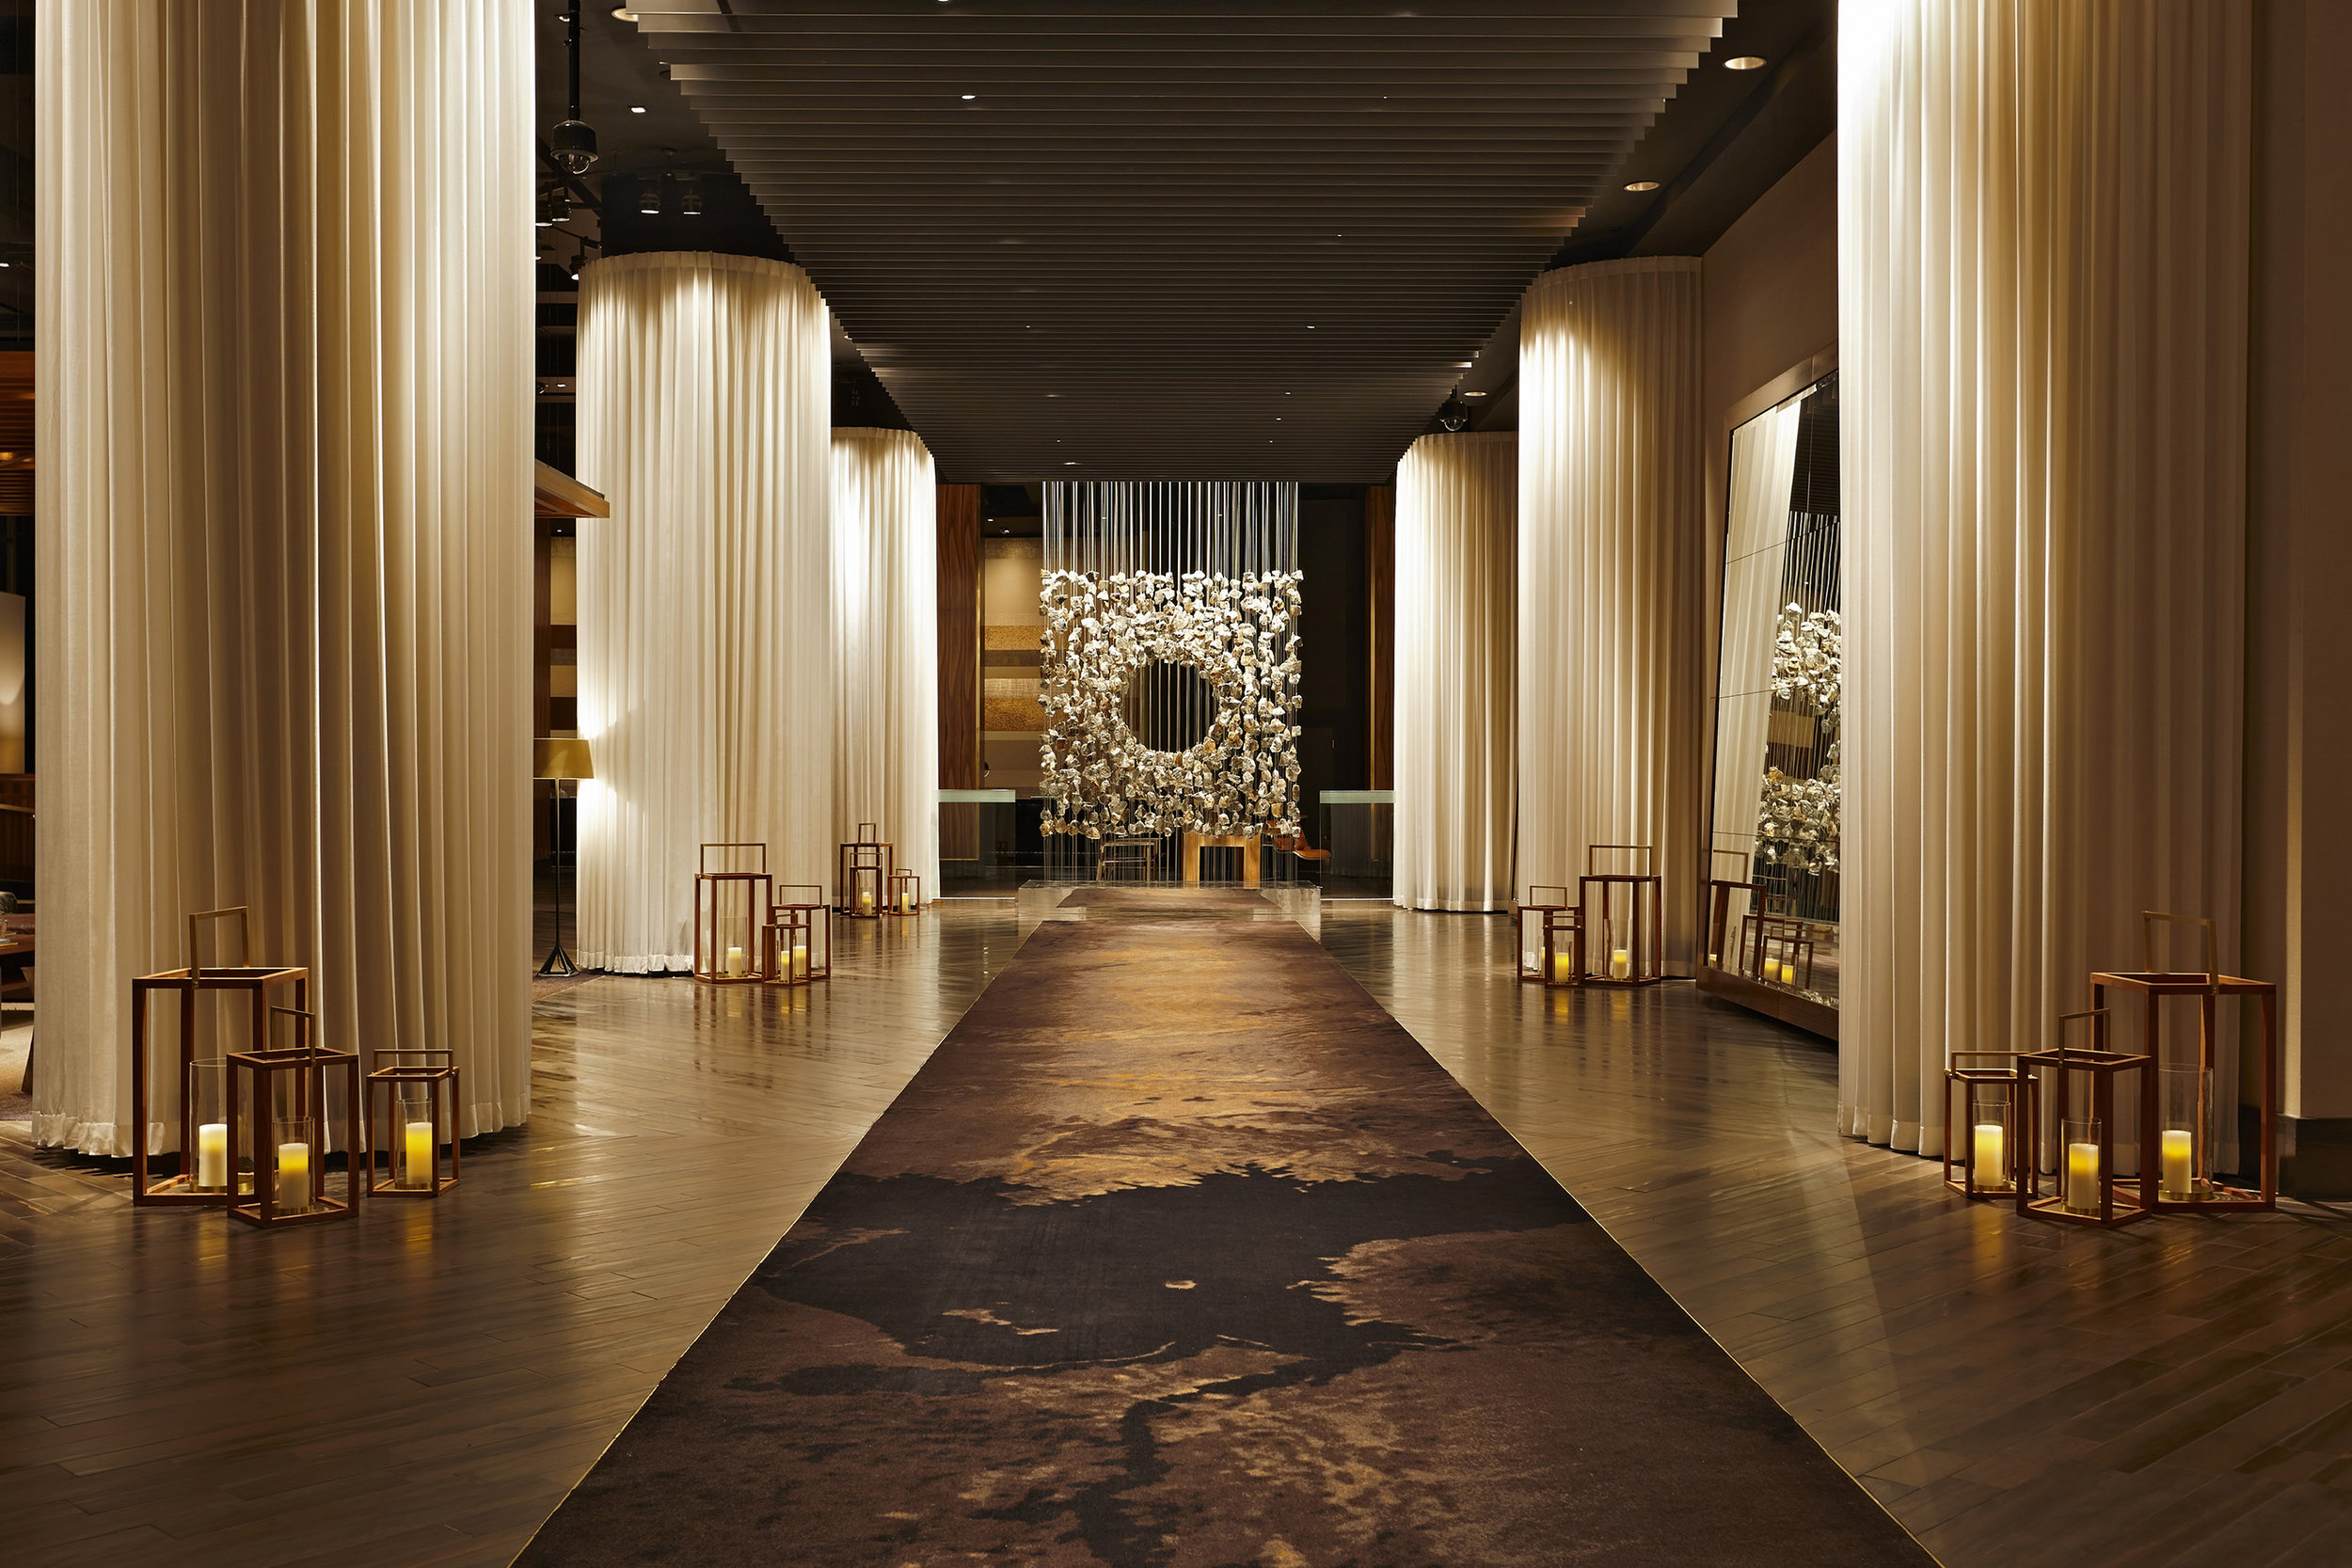 The lobby is lined with structural columns that are hidden behind sheer drapery, making this space feel warm and cozy. These sheer drapes also give the space that little touch of sexiness, reminding you of bed sheets.